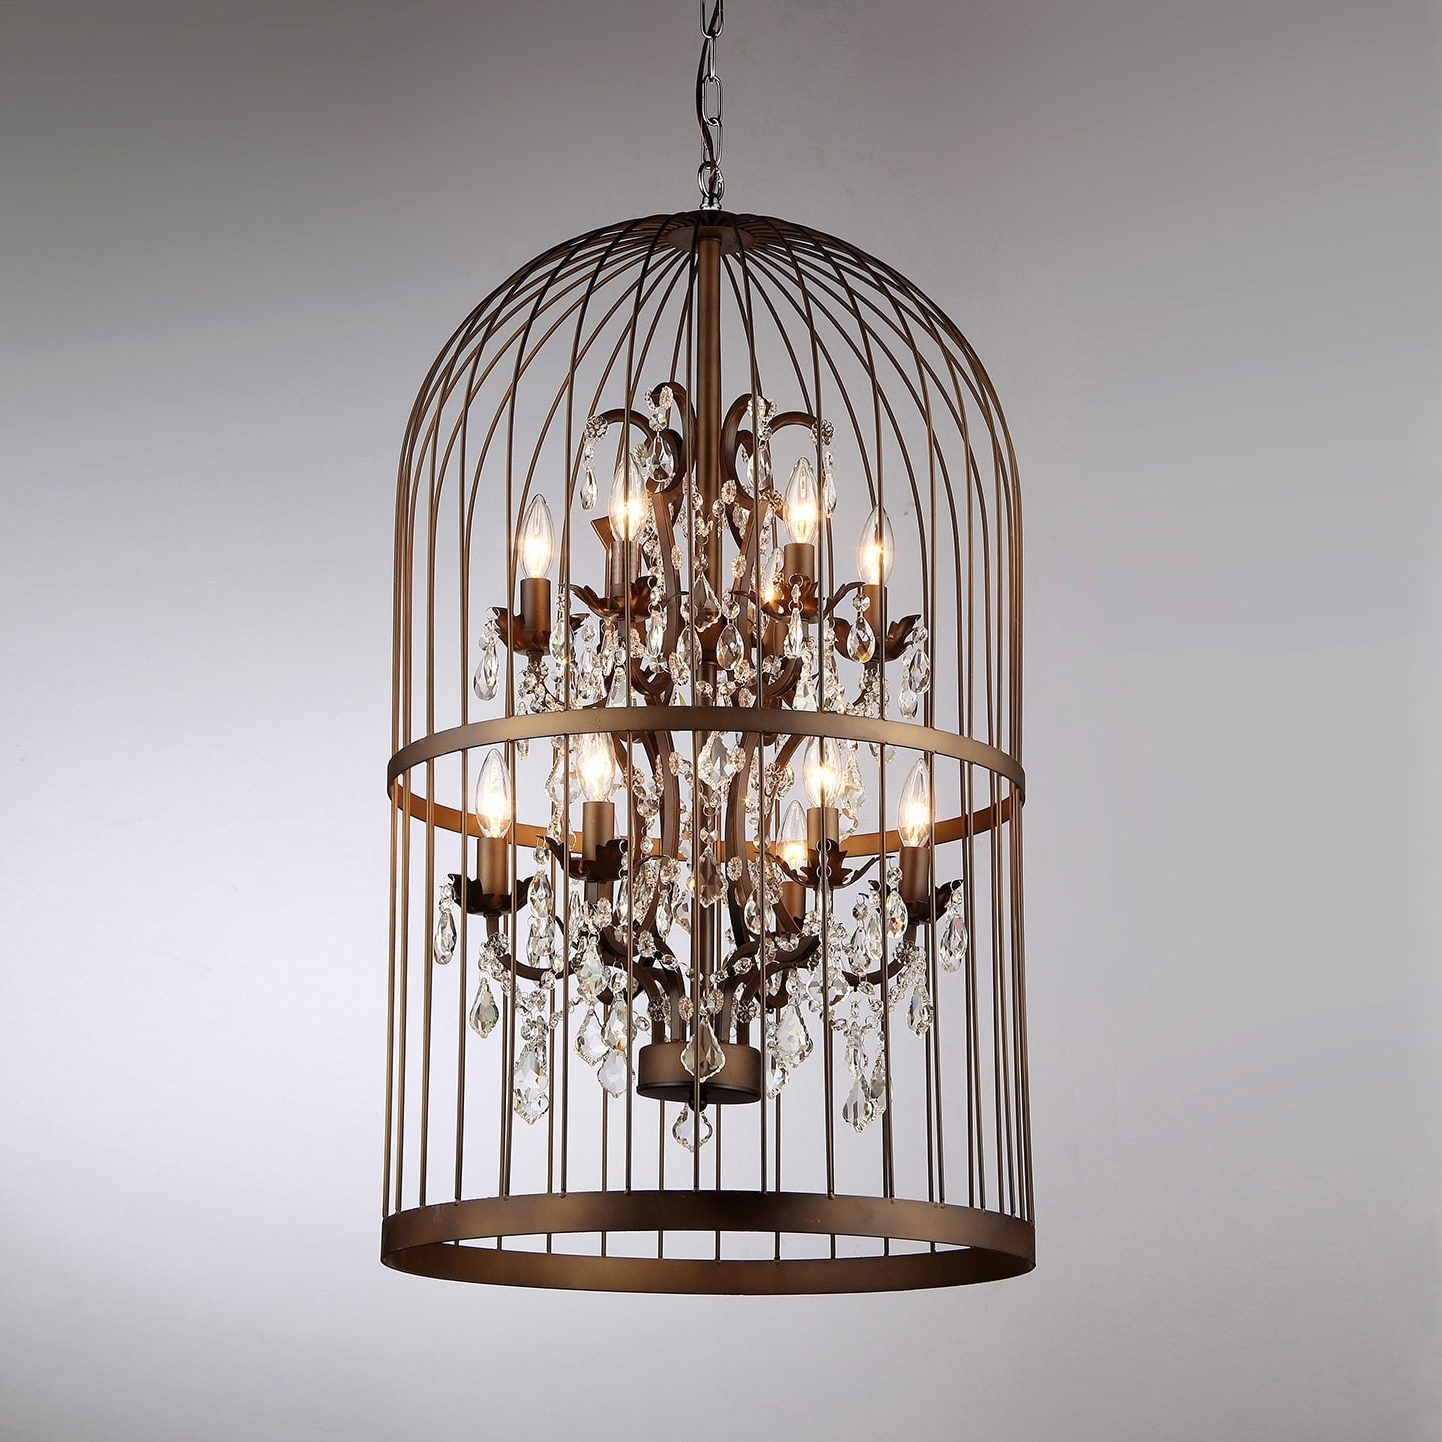 Widely Used Rinee Cage Chandelier – Free Shipping Today – Overstock – 16585997 Within Cage Chandeliers (View 15 of 15)